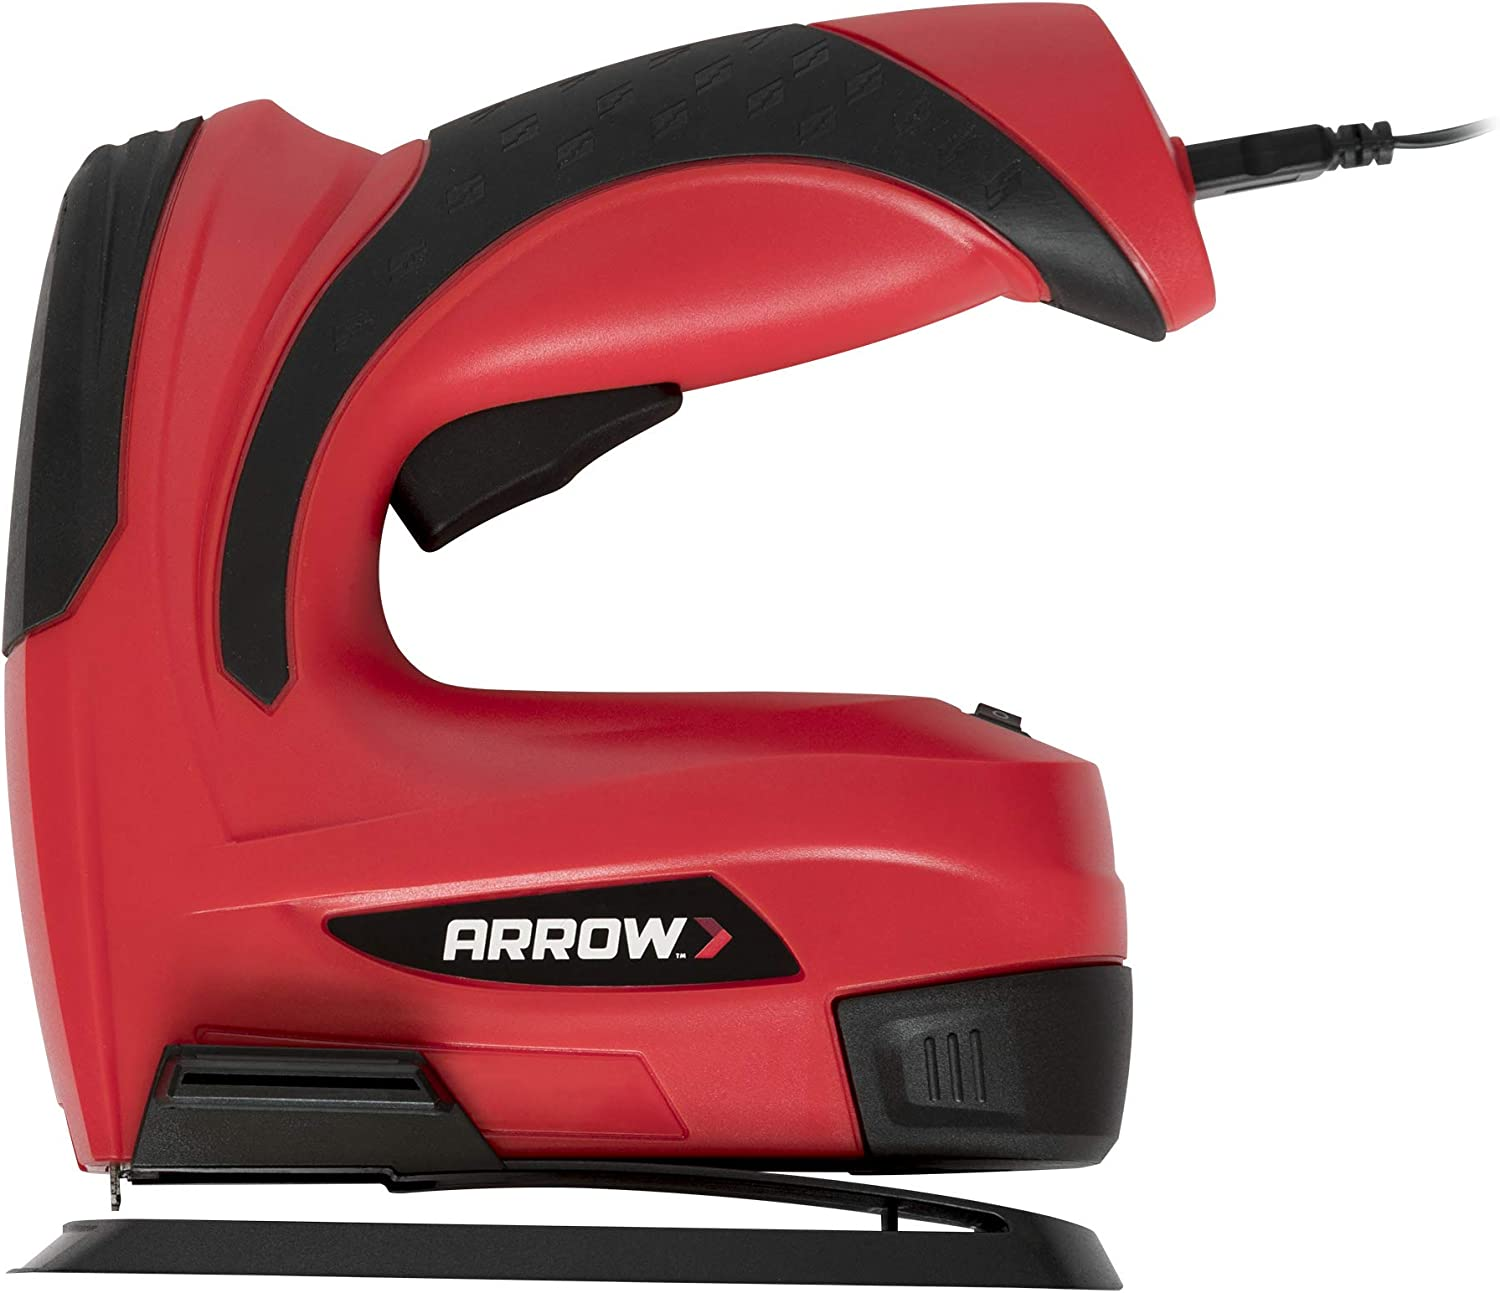 Arrow E21 Cordless Electric Light Duty Staple Gun with Rechargeable Battery